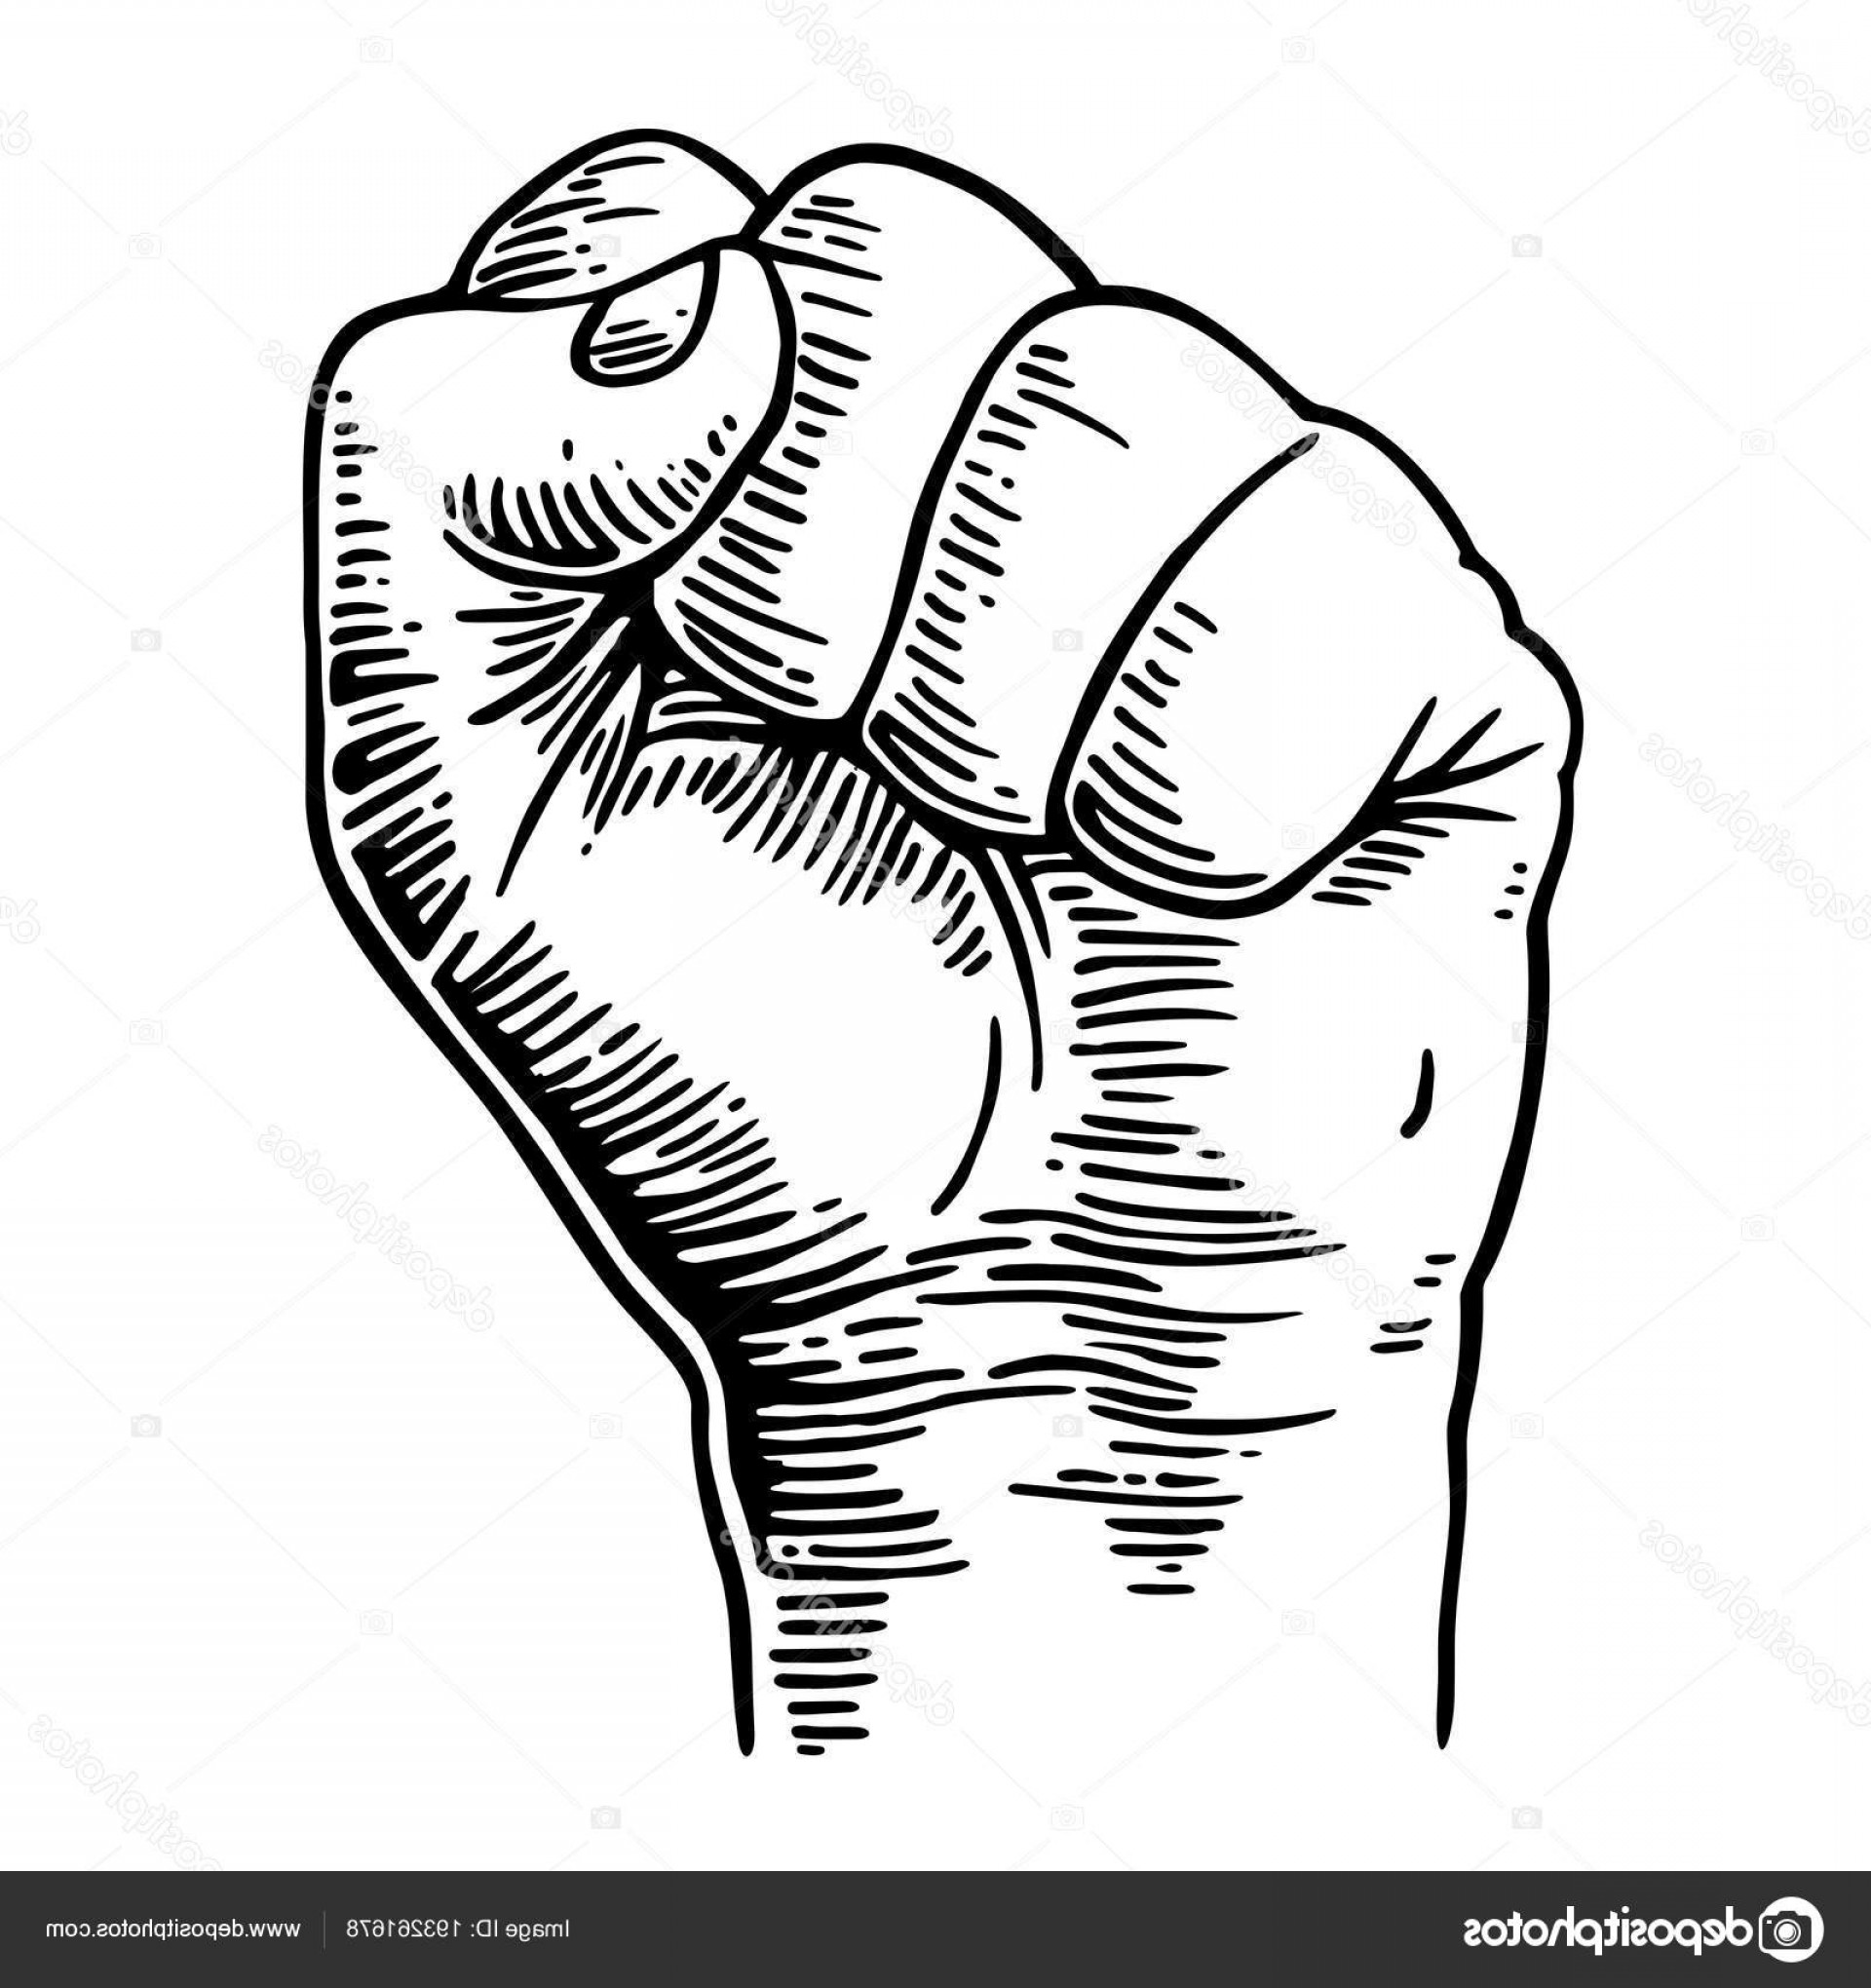 Black Power Fist Vector: Stock Illustration Human Hand With A Clenched